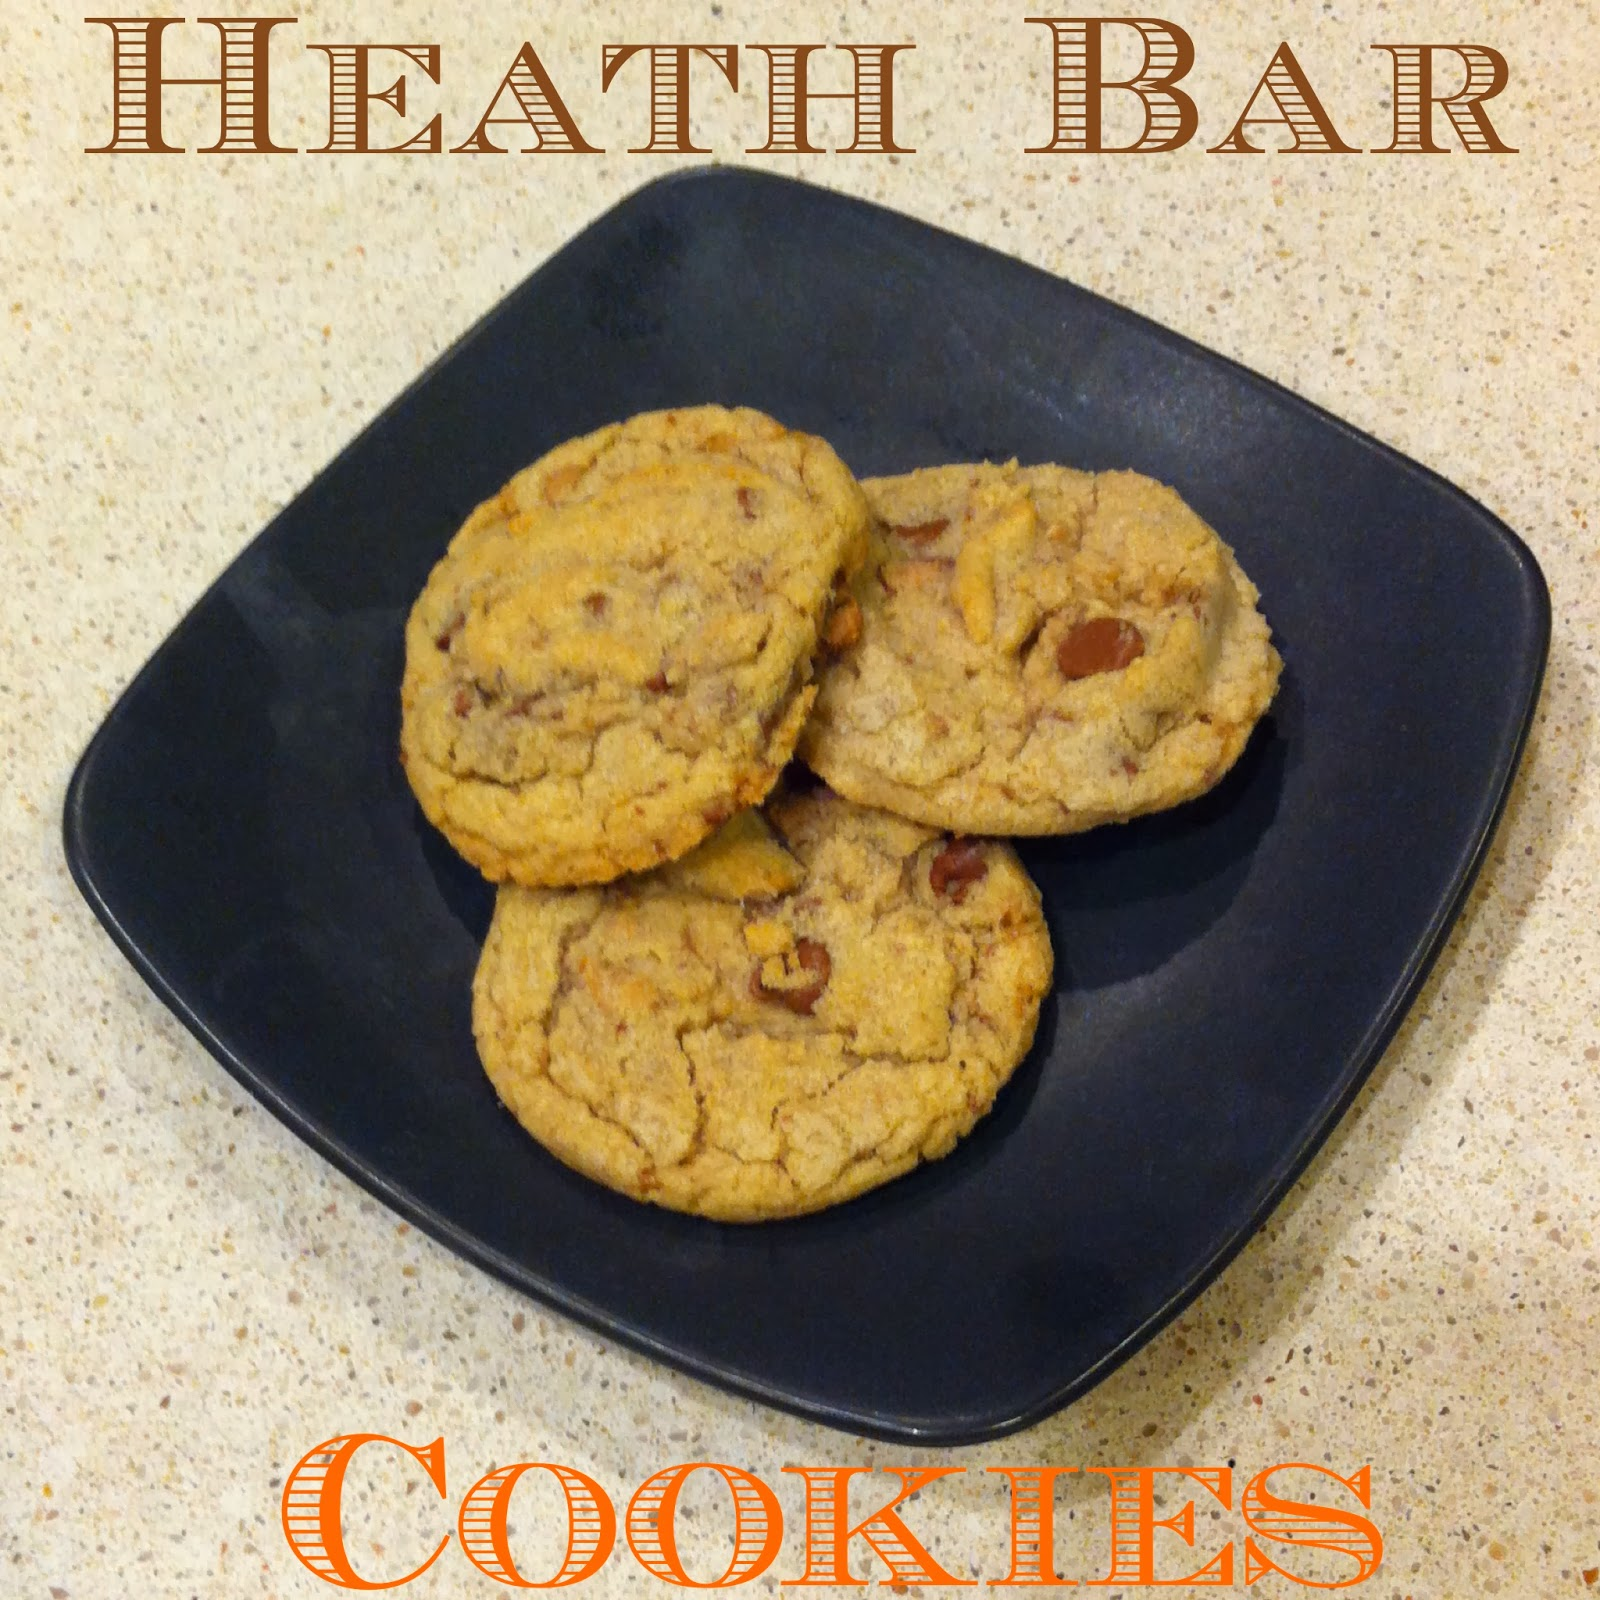 Heath Bar Cookies that are soft inside and crunchy on the outside.  Absolutely perfect.  Alohamora http://alohamoraopenabook.blogspot.com/